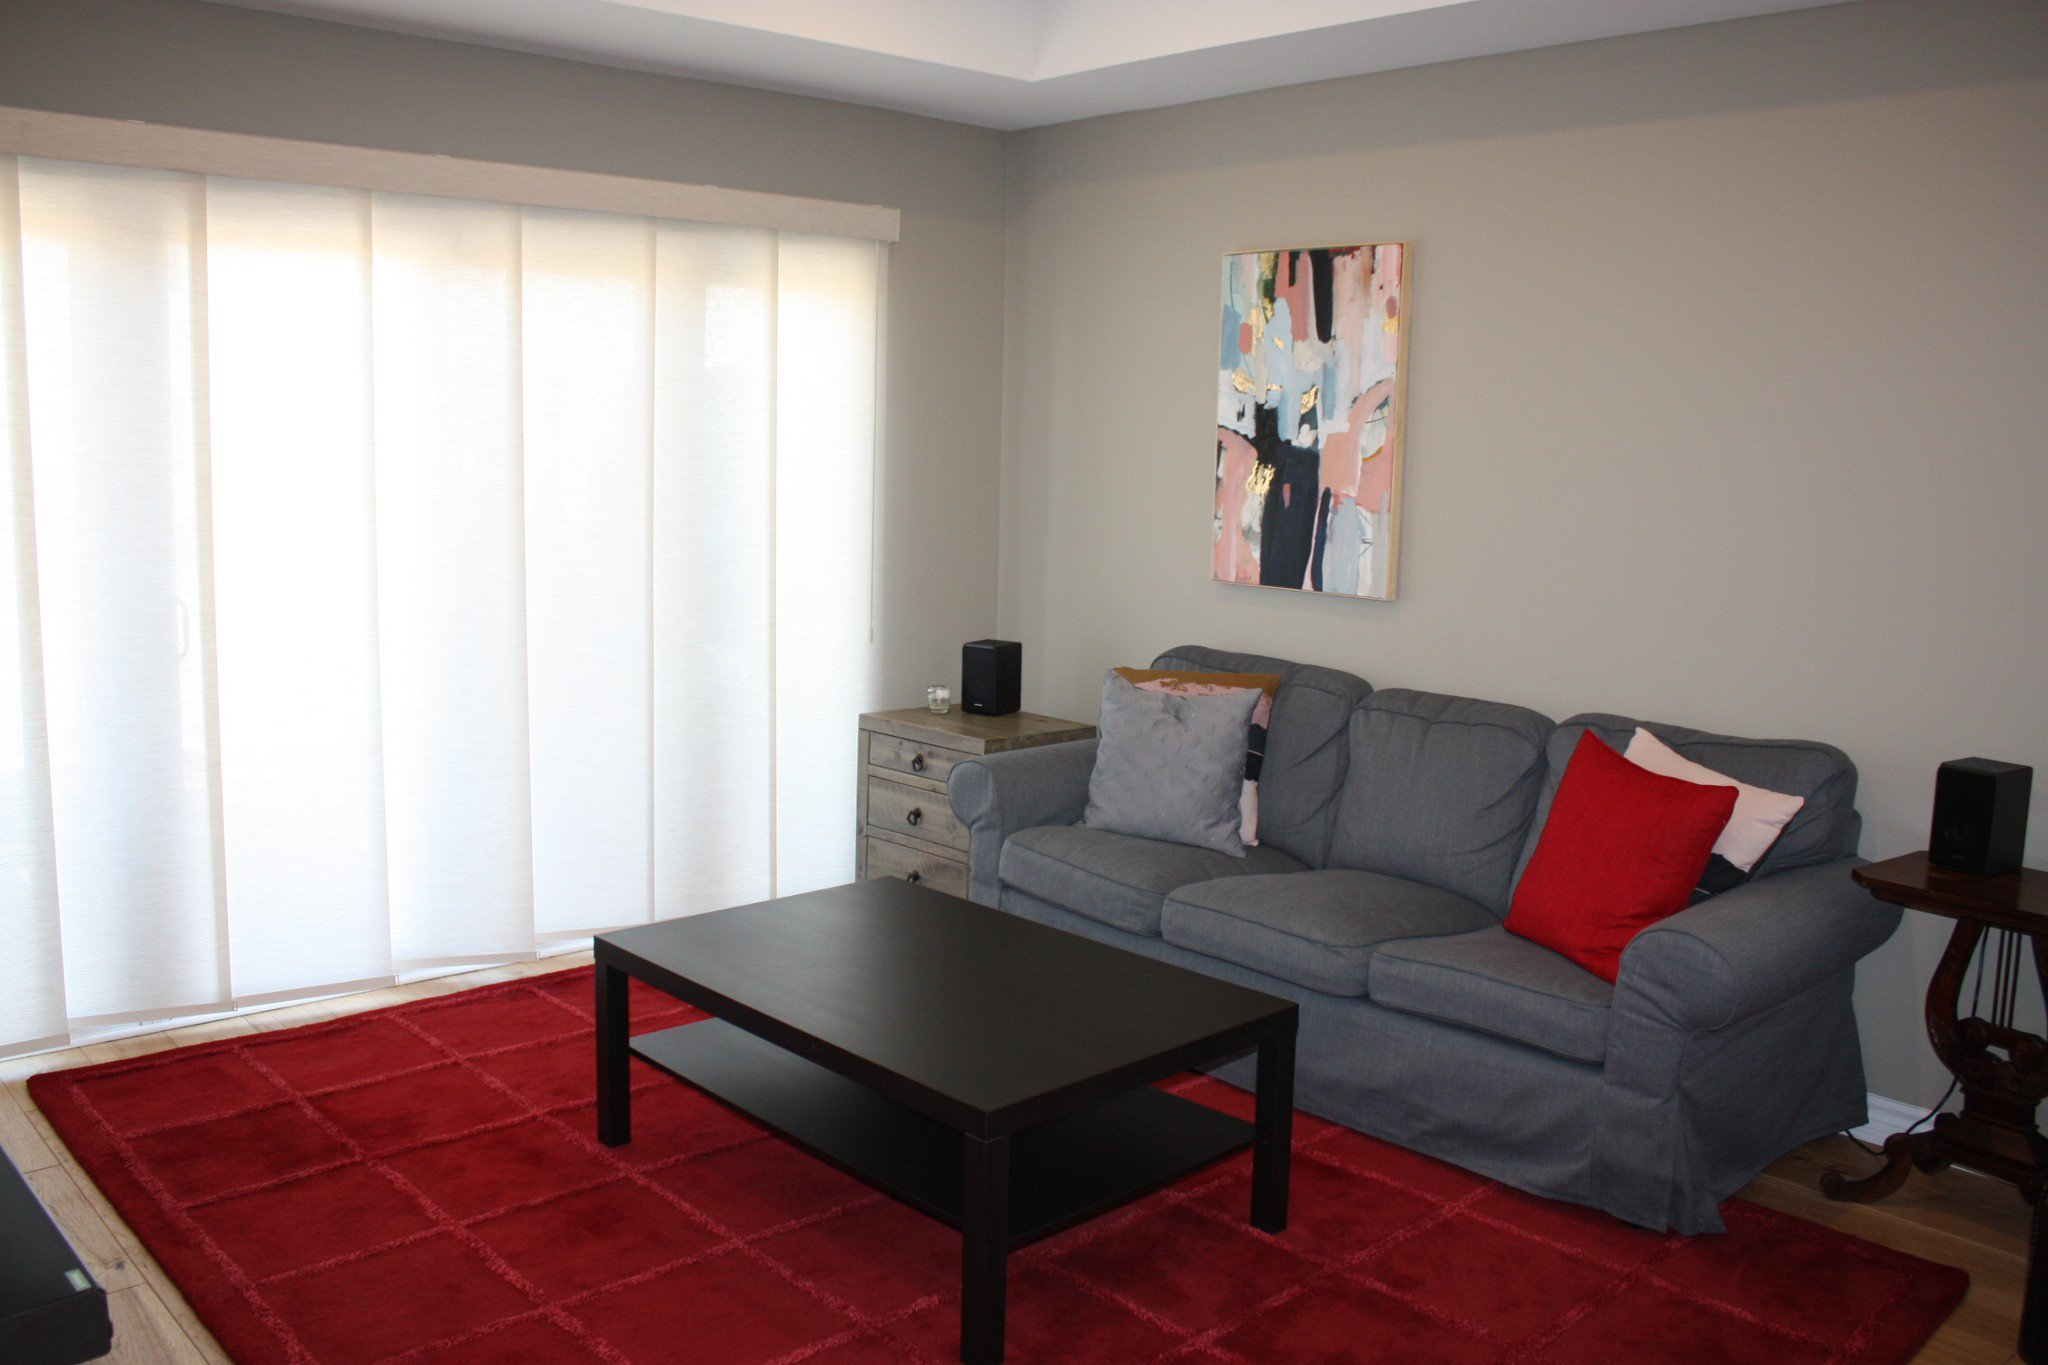 Photo 14: Photos: 706 Ontario Street in Cobourg: Residential Attached for sale : MLS®# 254262